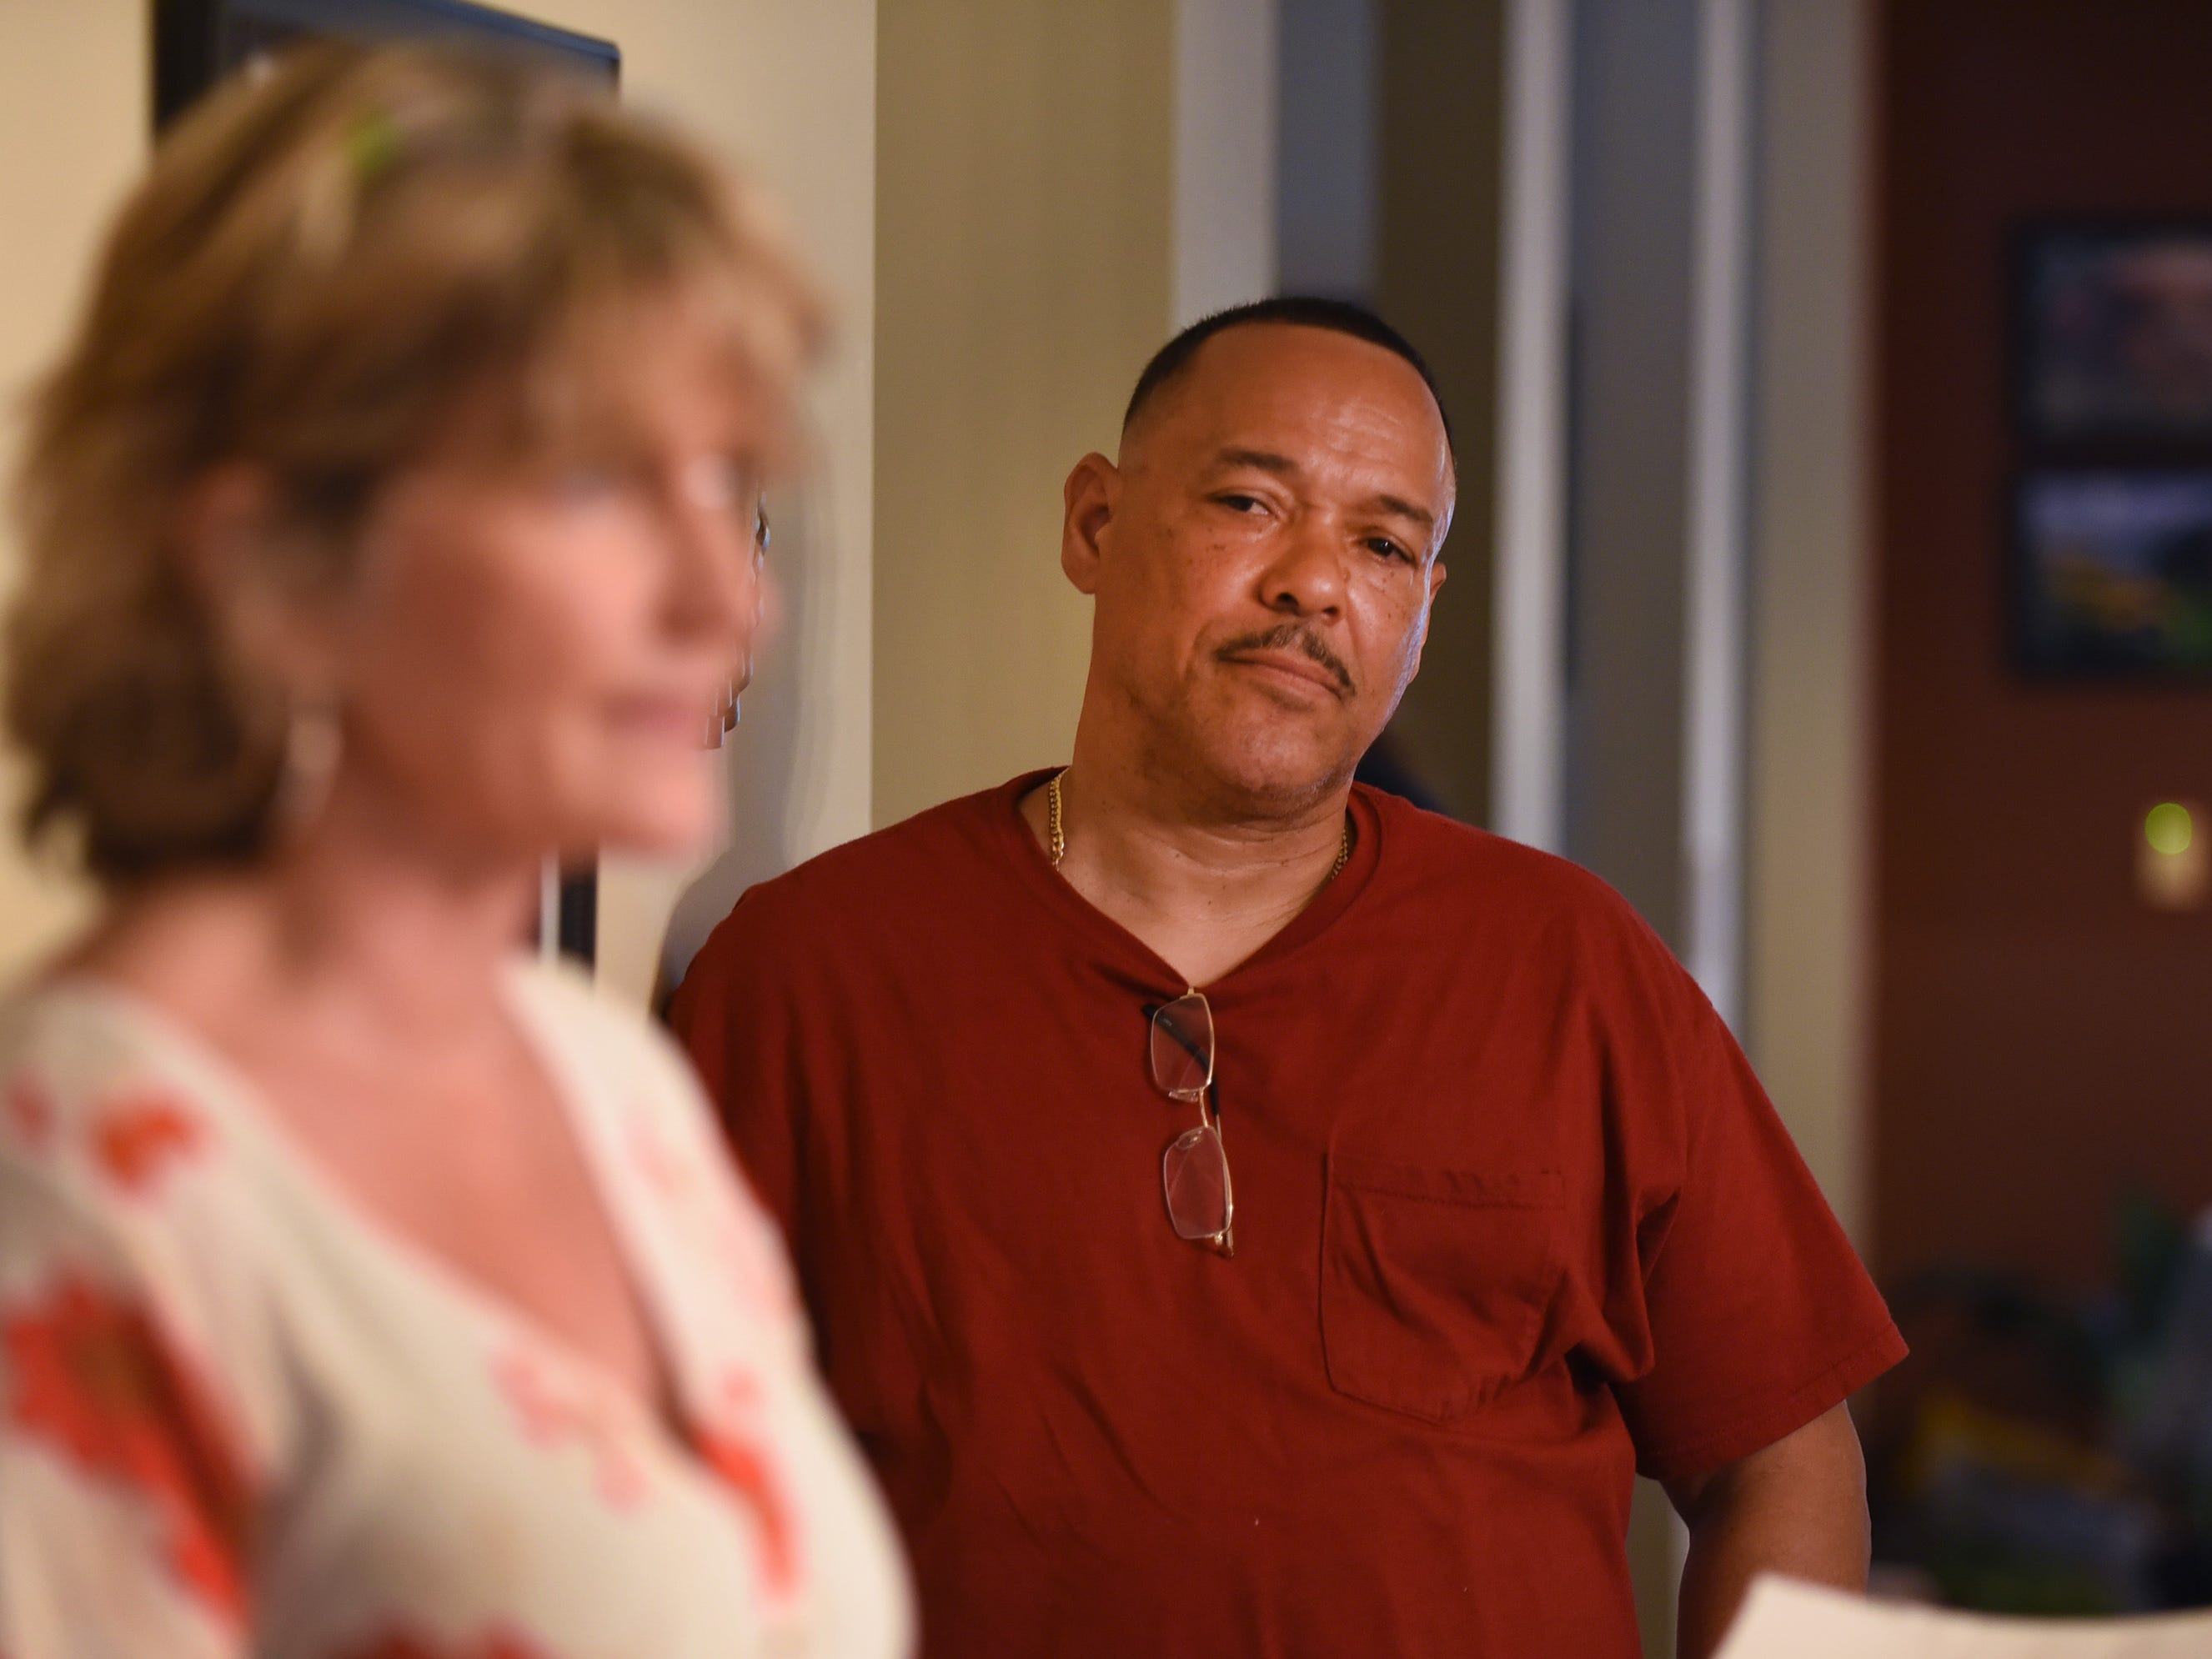 Cisco Sanchez (age 57) of Paterson, who is recovering from drug and alcohol addiction, listens as Nancy Labov (foreground), the Founder and Director of AIR(Alumni in Recovery), speaks to its members, family members of those who died from addiction,and volunteers, during their annual community meeting in Old Tappan on 04/14/19.